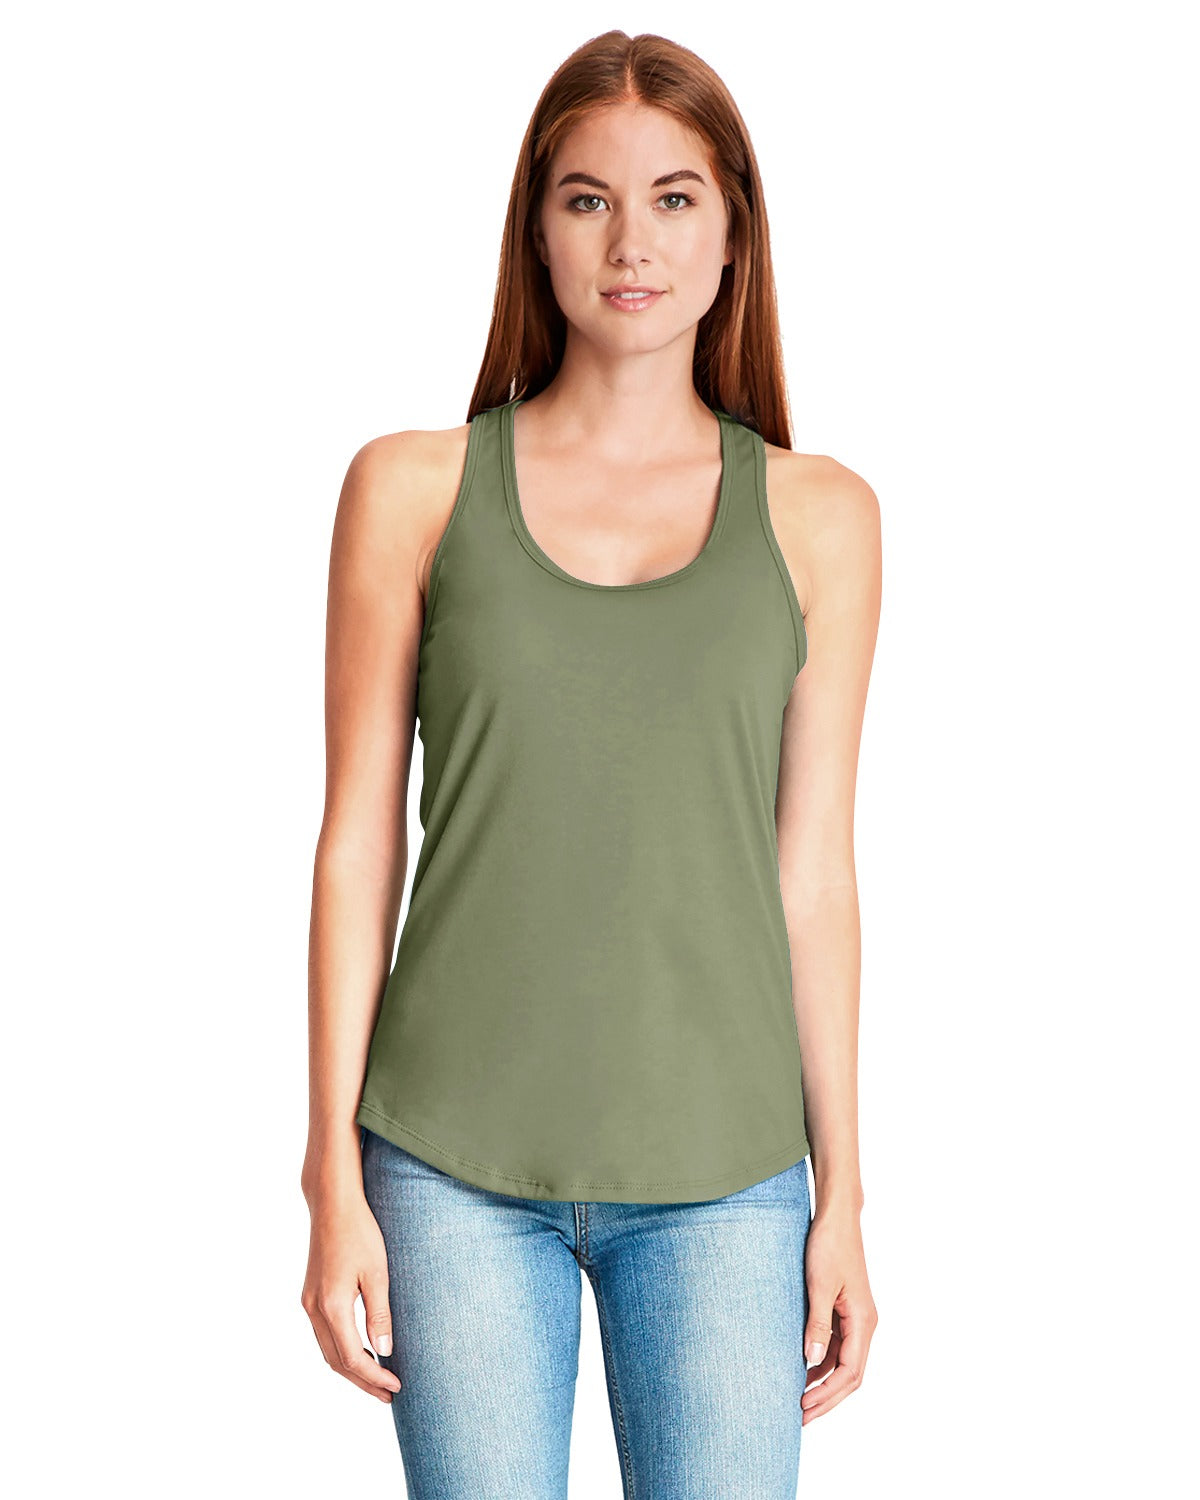 TF Next Level Ladies' Gathered Racerback Tank